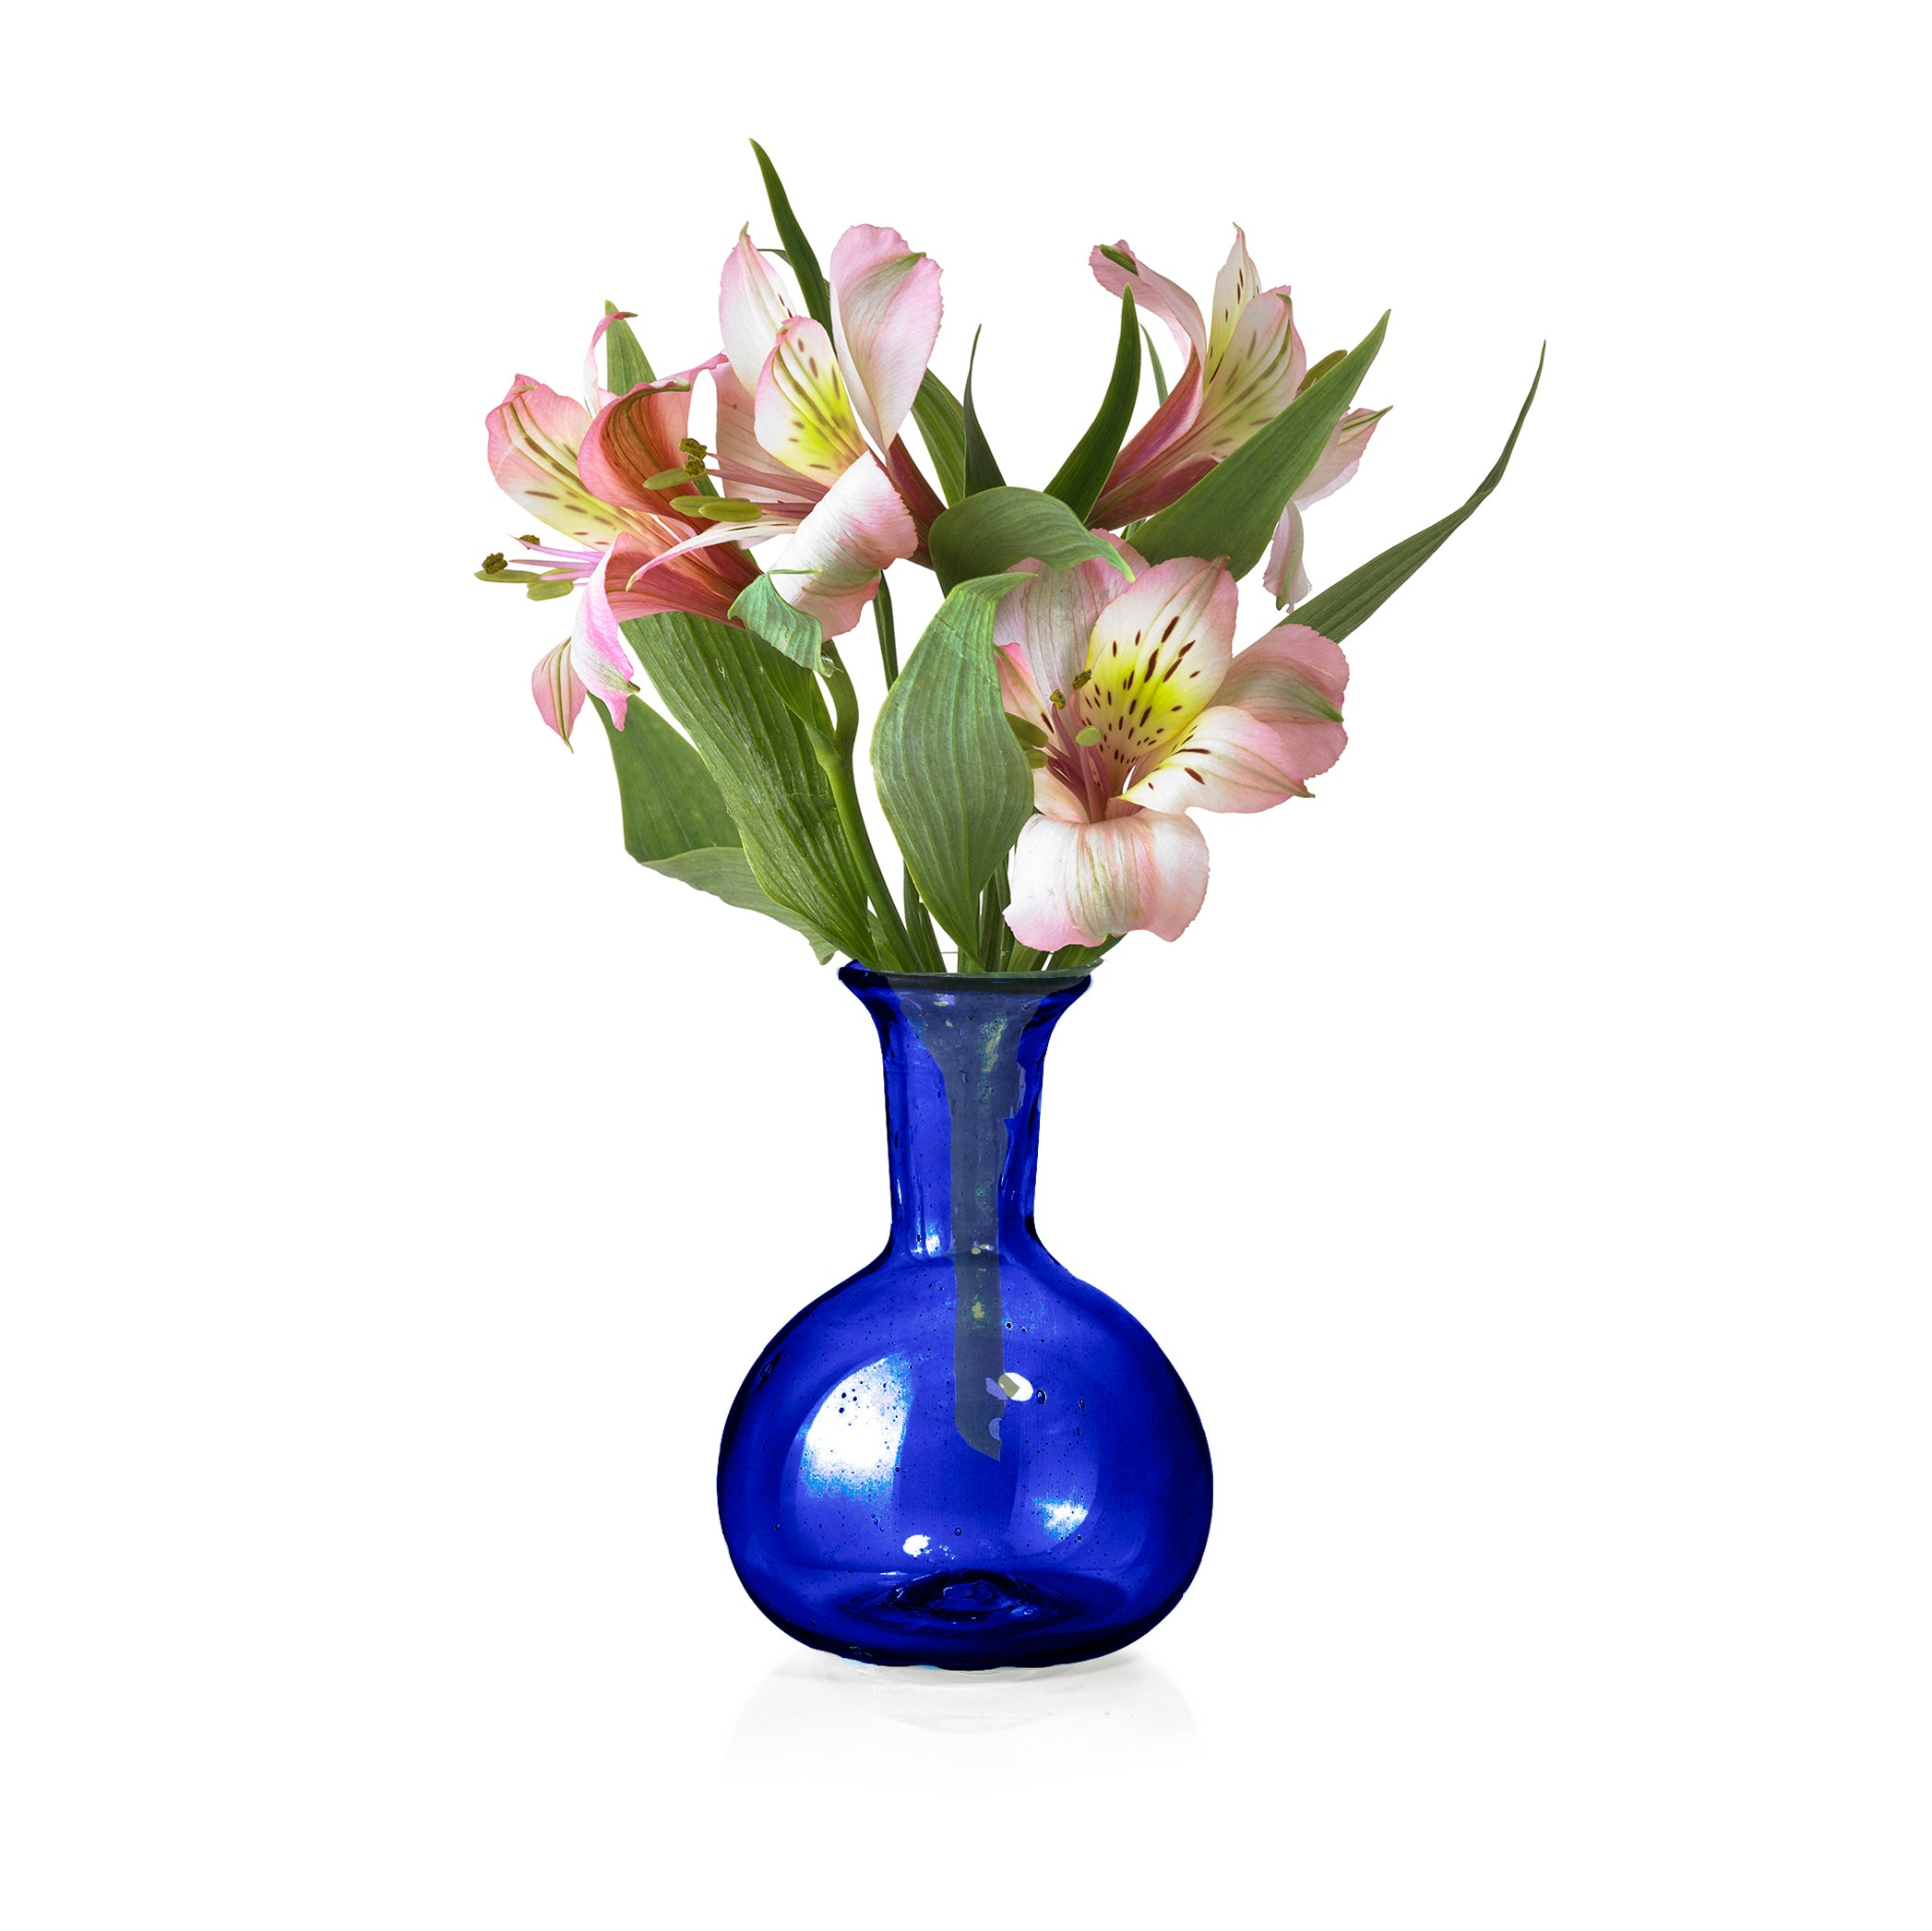 Handblown Small Round Bud Vase in Cobalt Blue